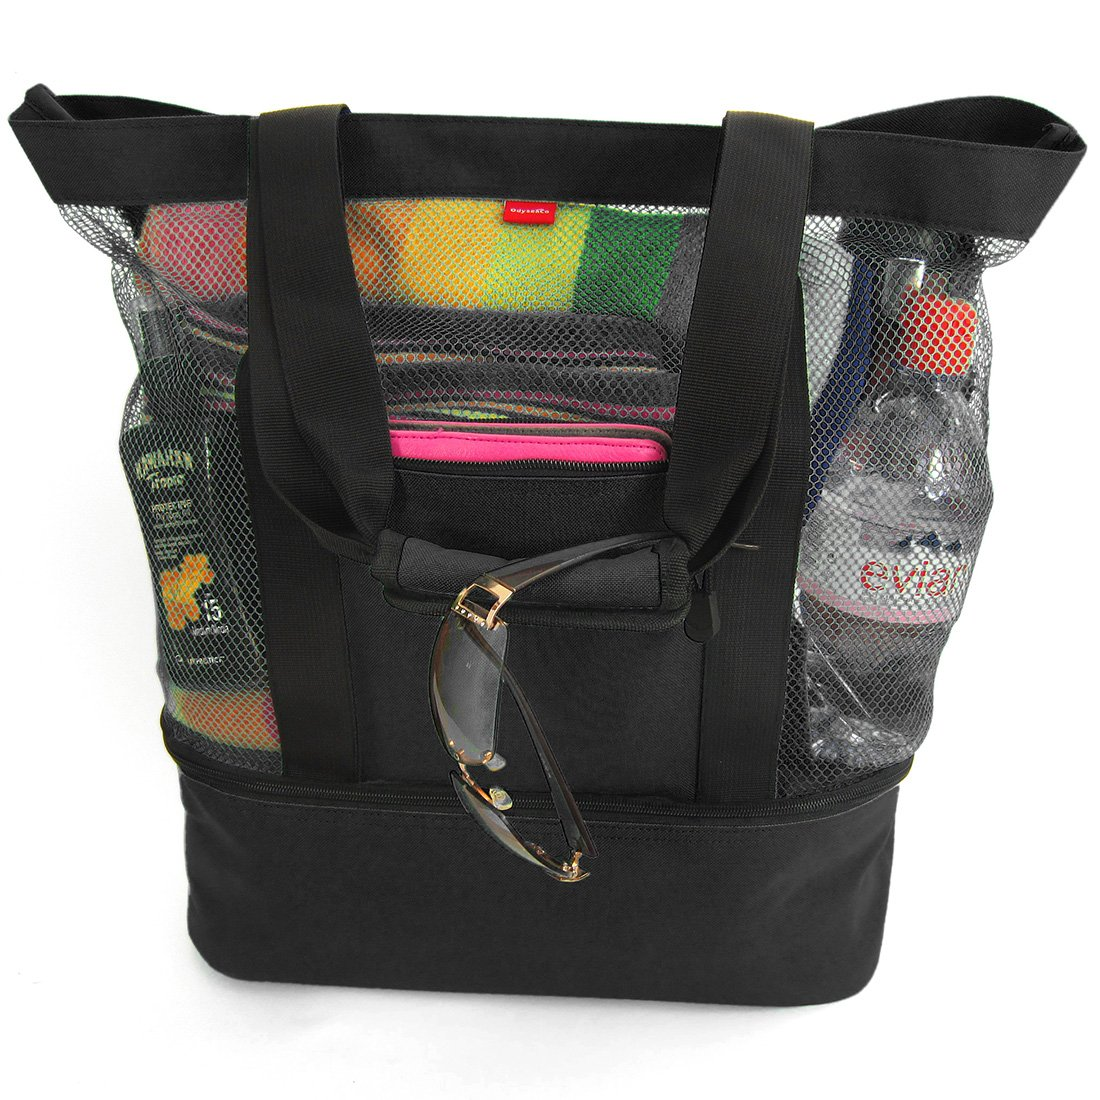 The Odyseaco - Aruba Beach Bag - Beach Tote travel product recommended by Becky Beach on Lifney.